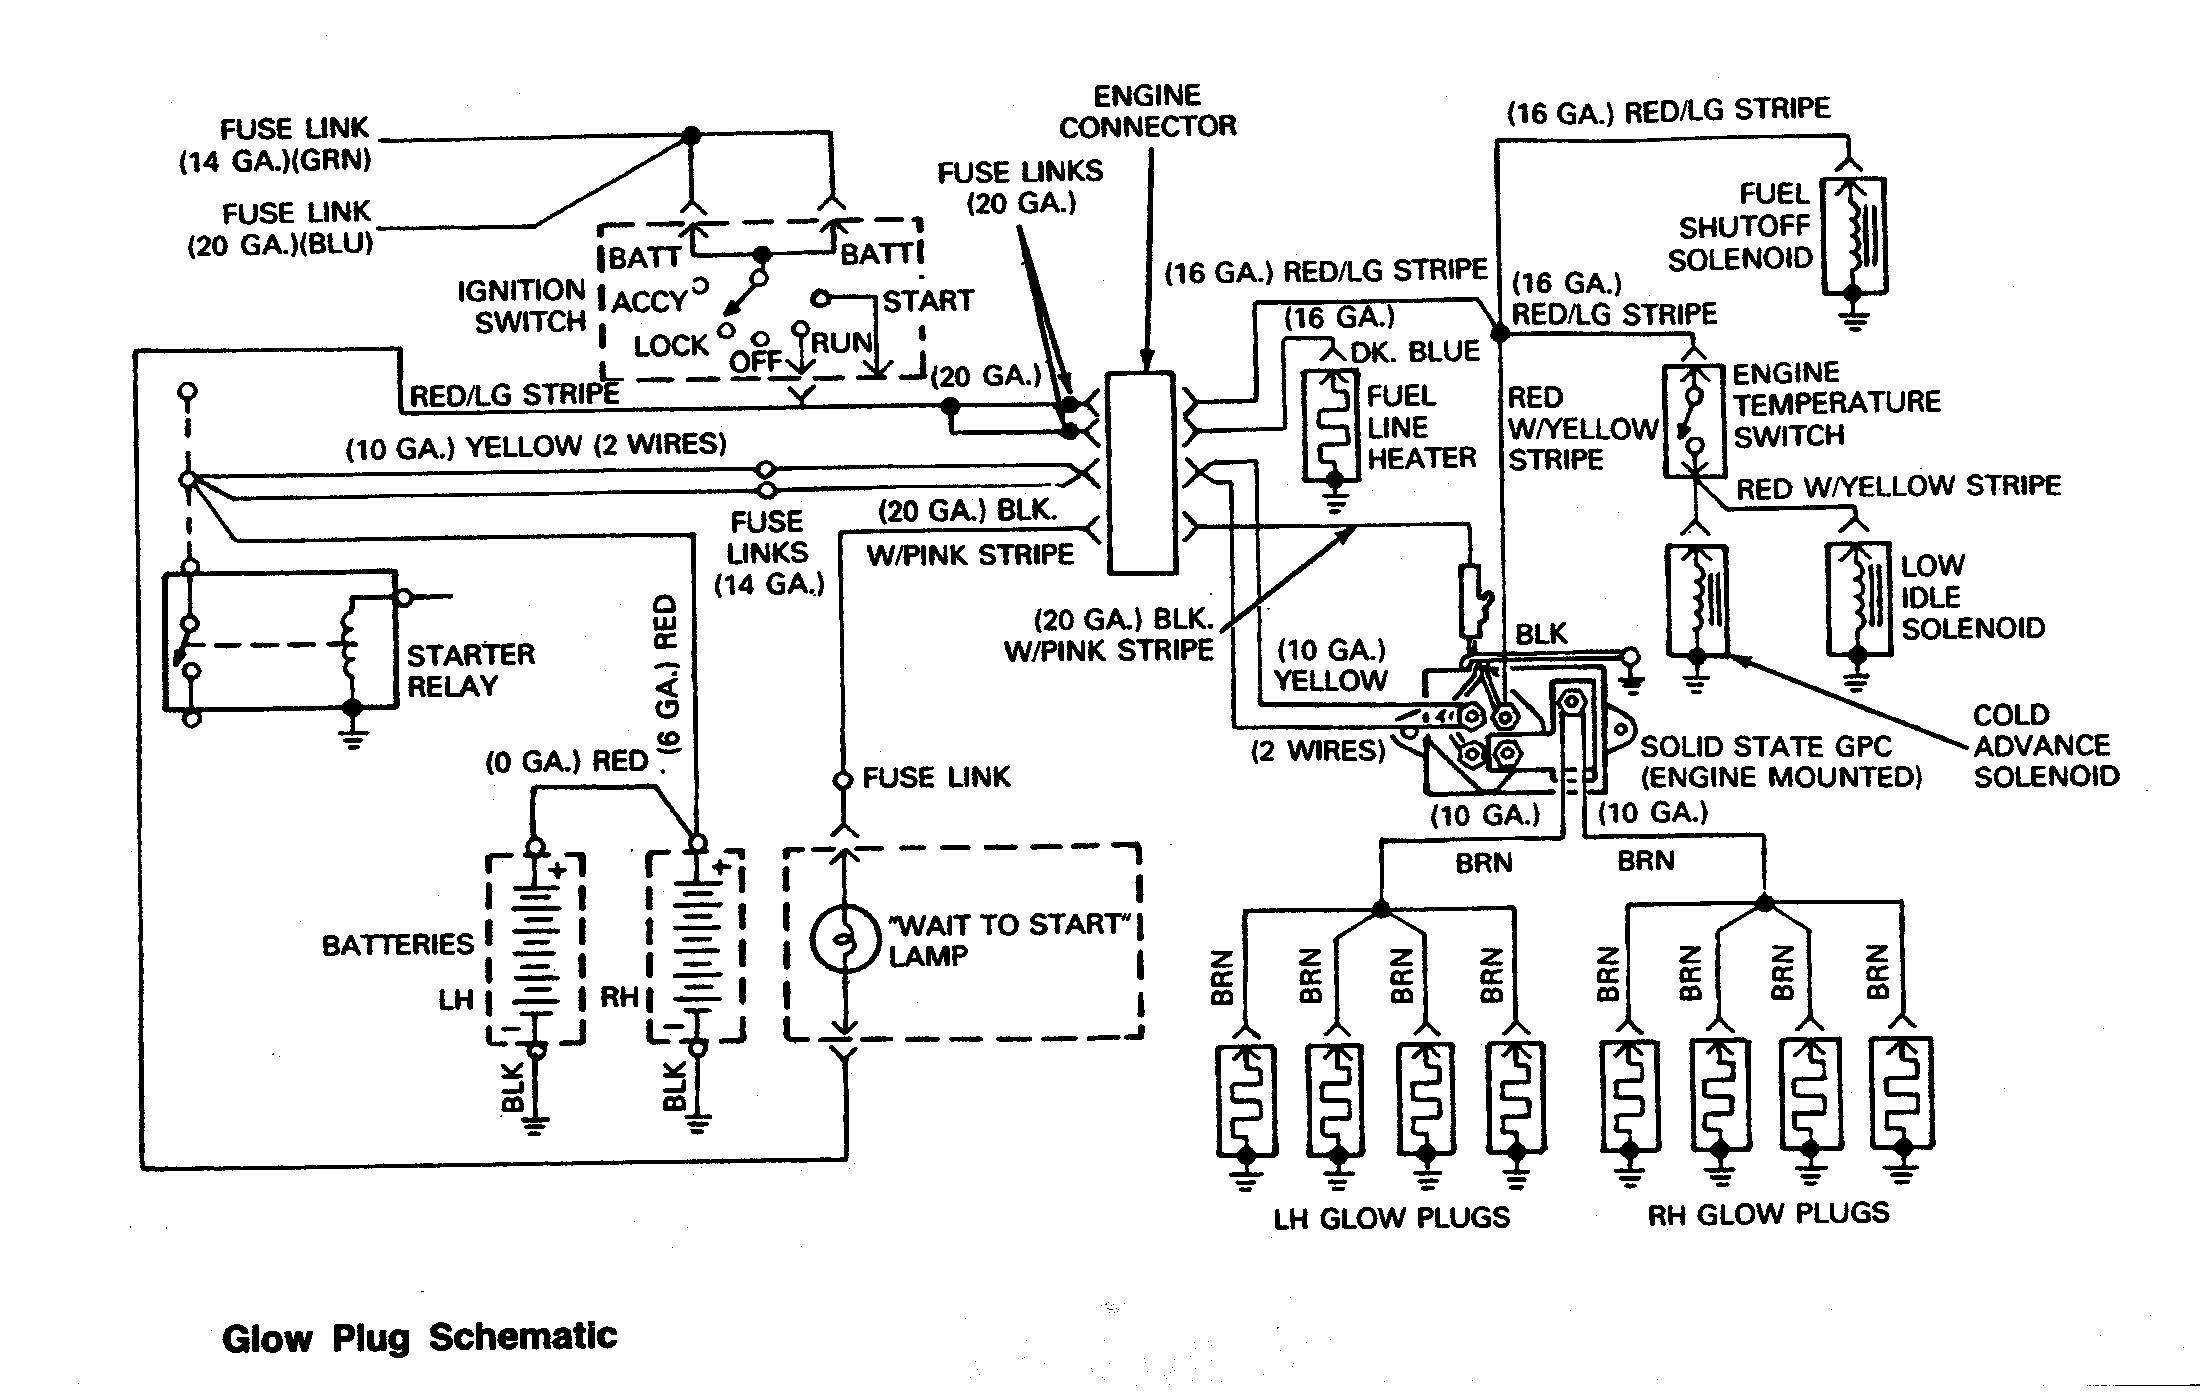 engine and jet drive kubota rtv 500 wiring diagram kubota rtv 1140 wiring diagram